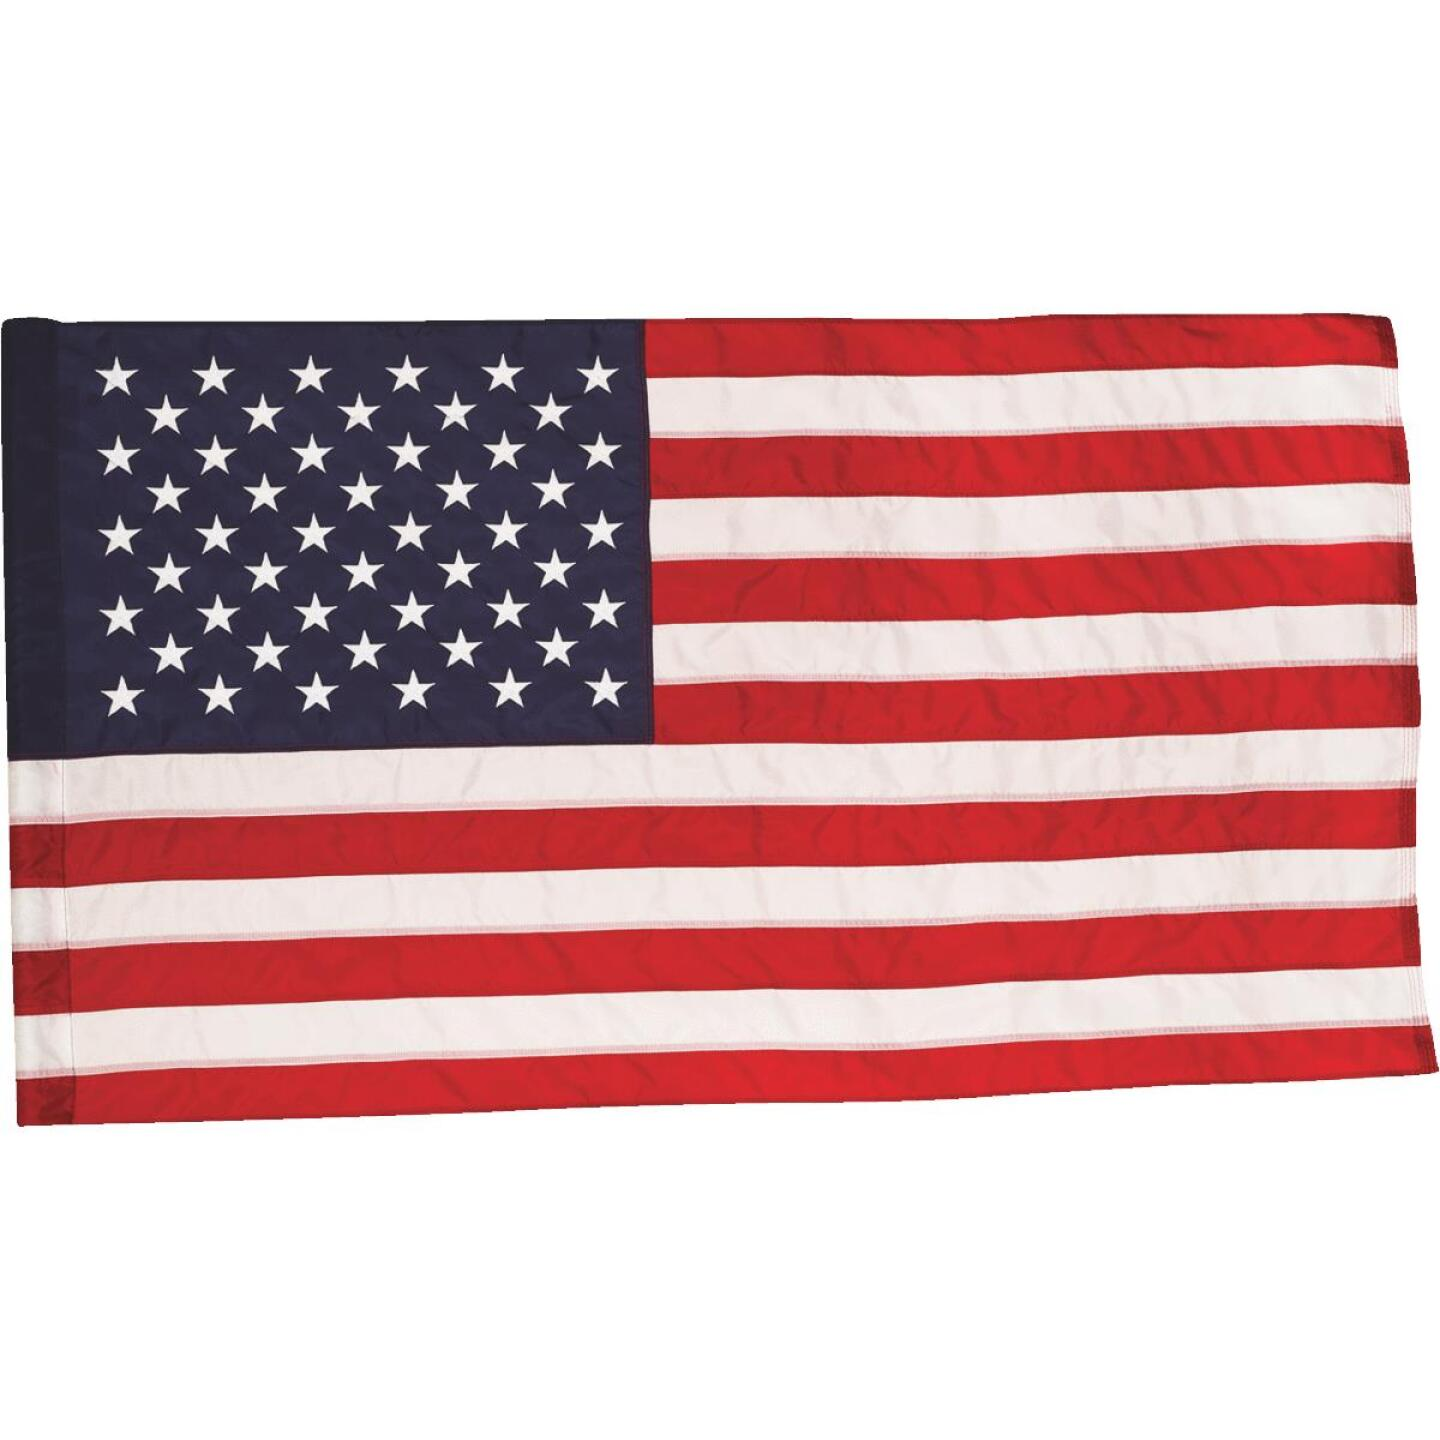 Valley Forge 2.5 Ft. x 4 Ft. Nylon Presidential Series American Flag Image 1